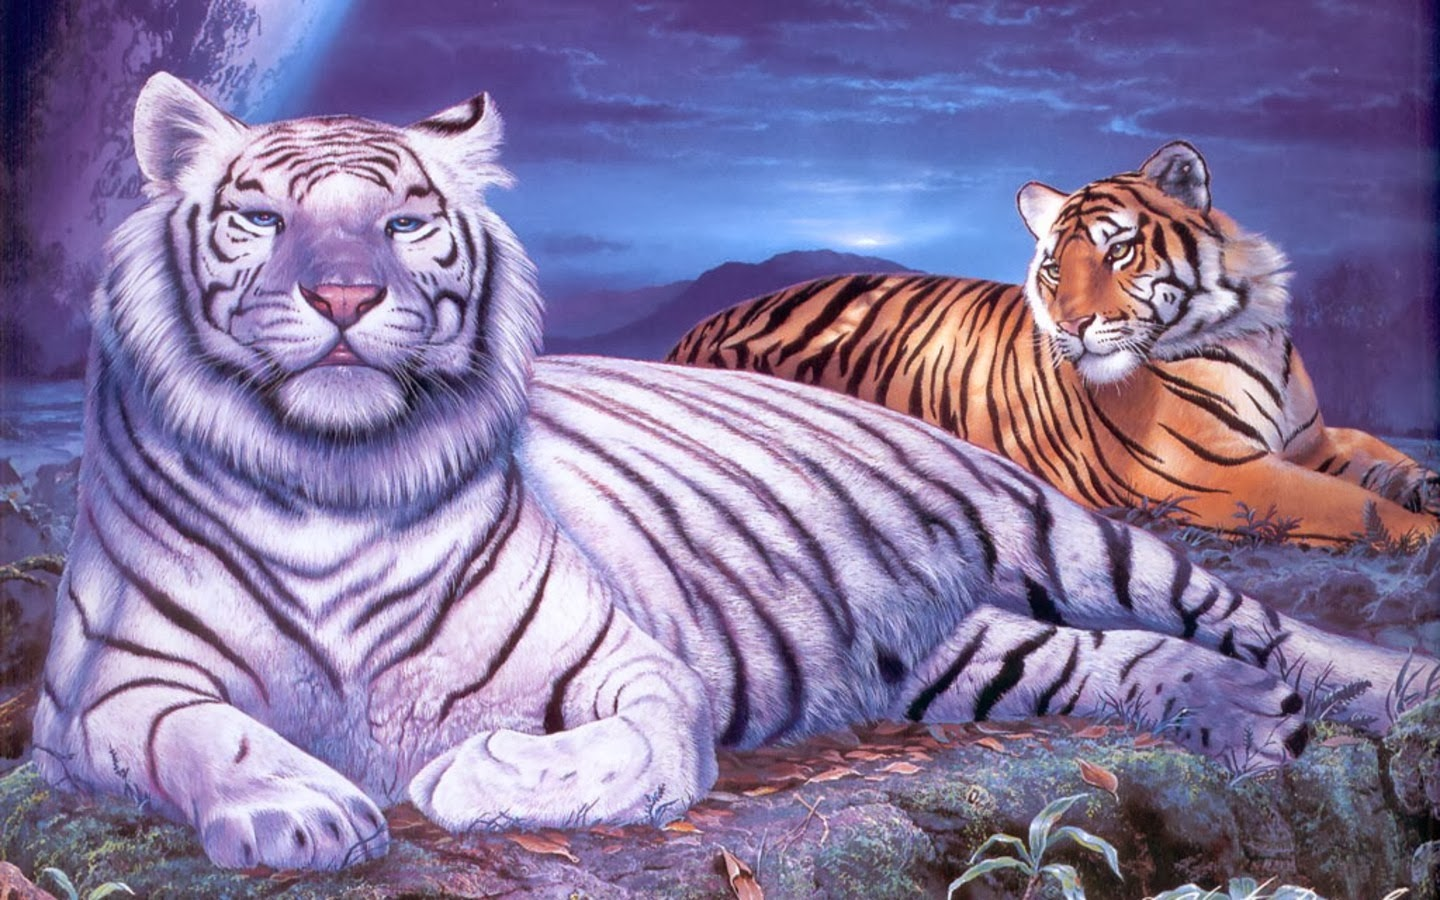 White Tiger Hd Wallpapers Backgrounds Wallpaper Page 1440x900